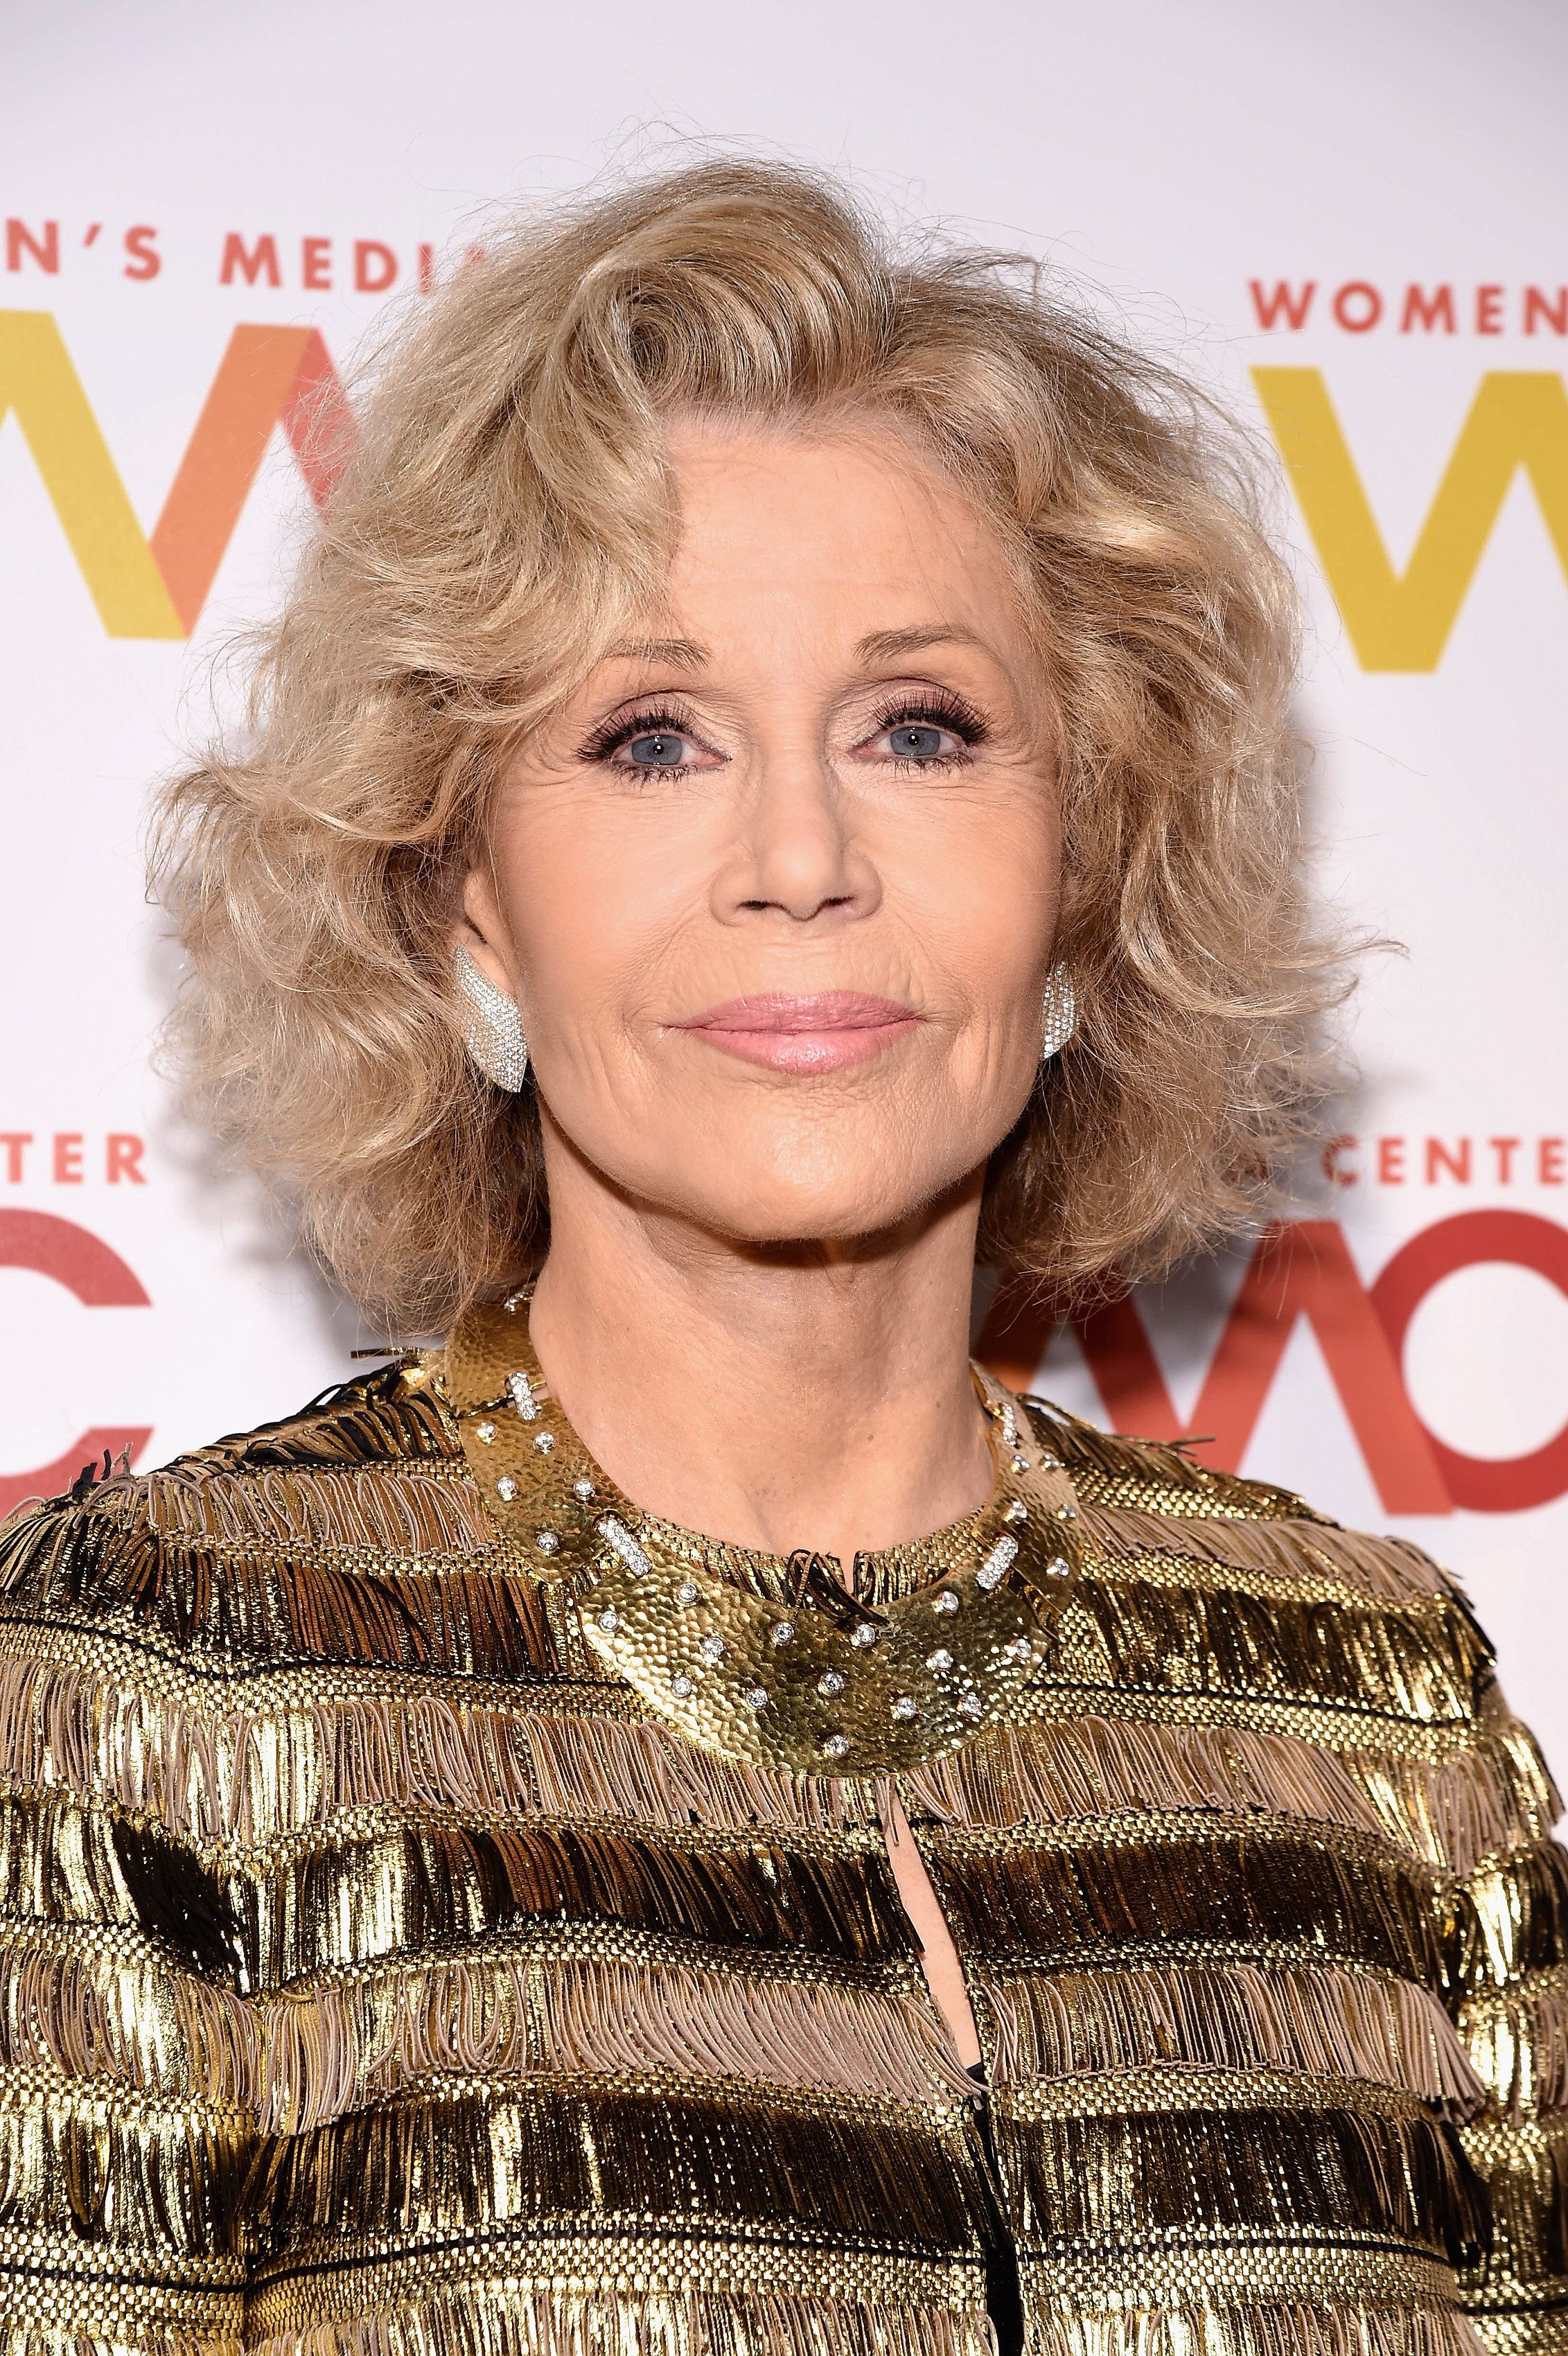 NEW YORK, NY - NOVEMBER 01:  Women's Media Center Co-FounderJane Fonda attends the Women's Media Center 2018 Women's Media Awards at Capitale on November 1, 2018 in New York City.  (Photo by Gary Gershoff/Getty Images)